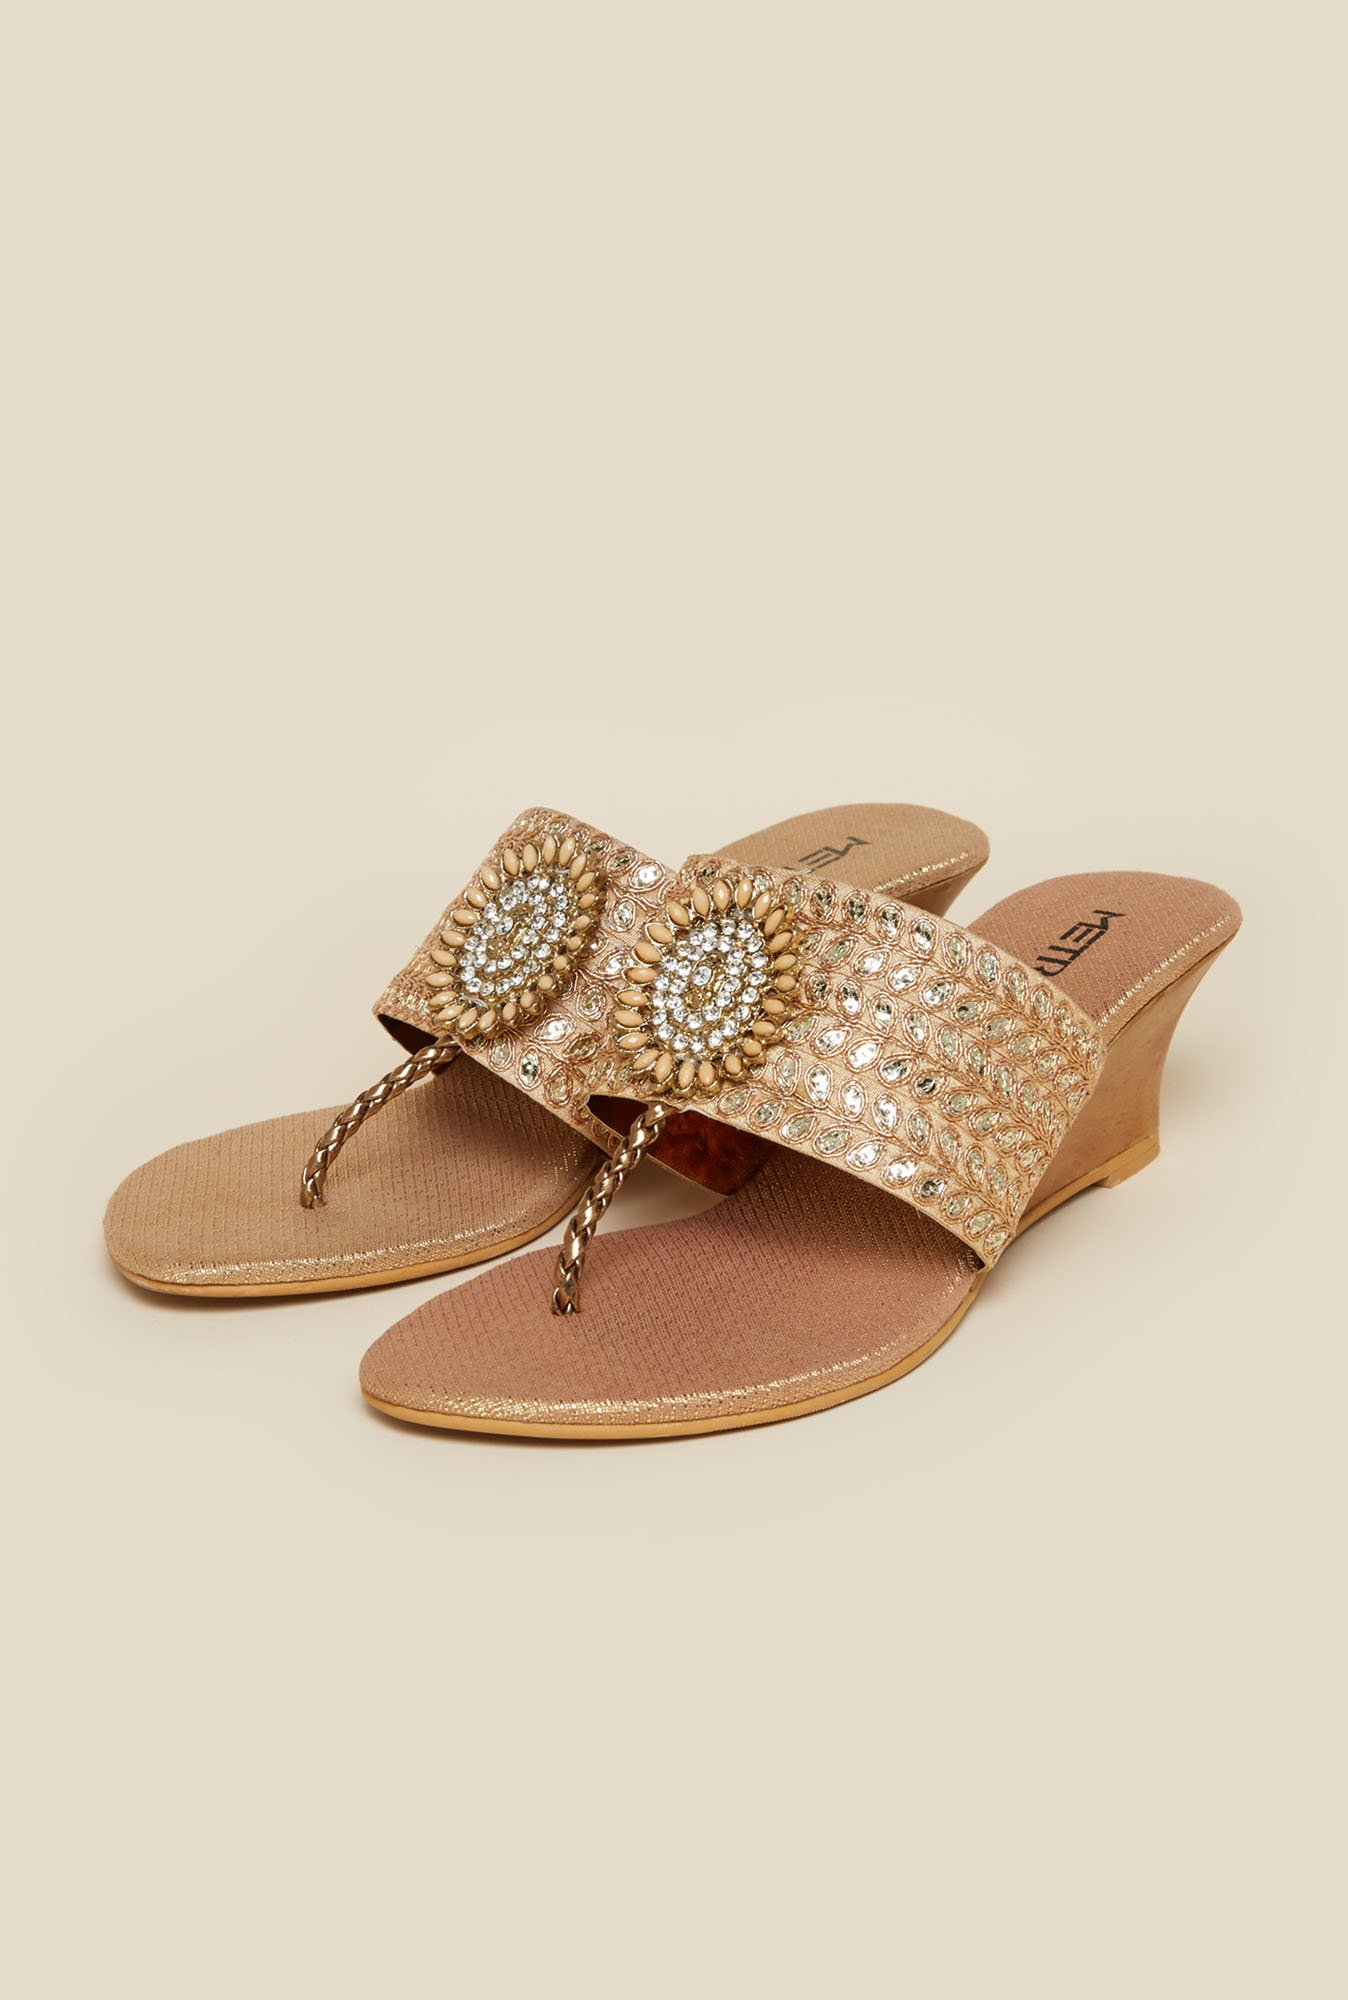 Metro Antique Gold Ethnic Wedges